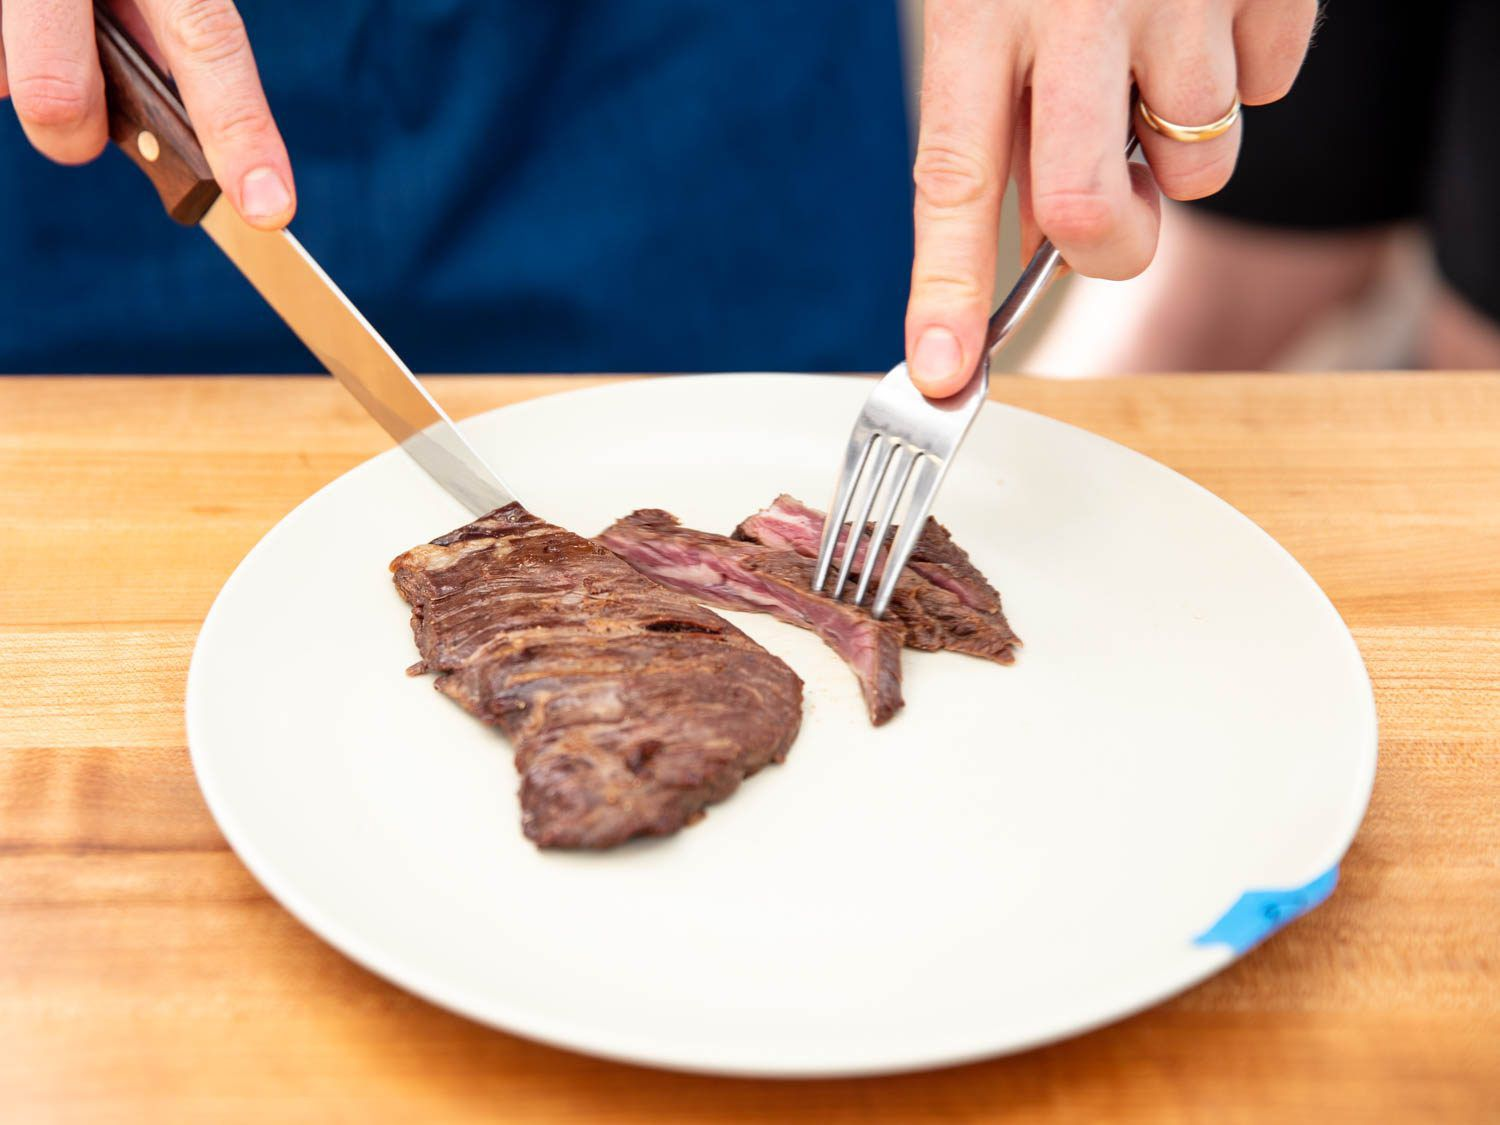 Slicing into a rare hanger steak with a steak knife.